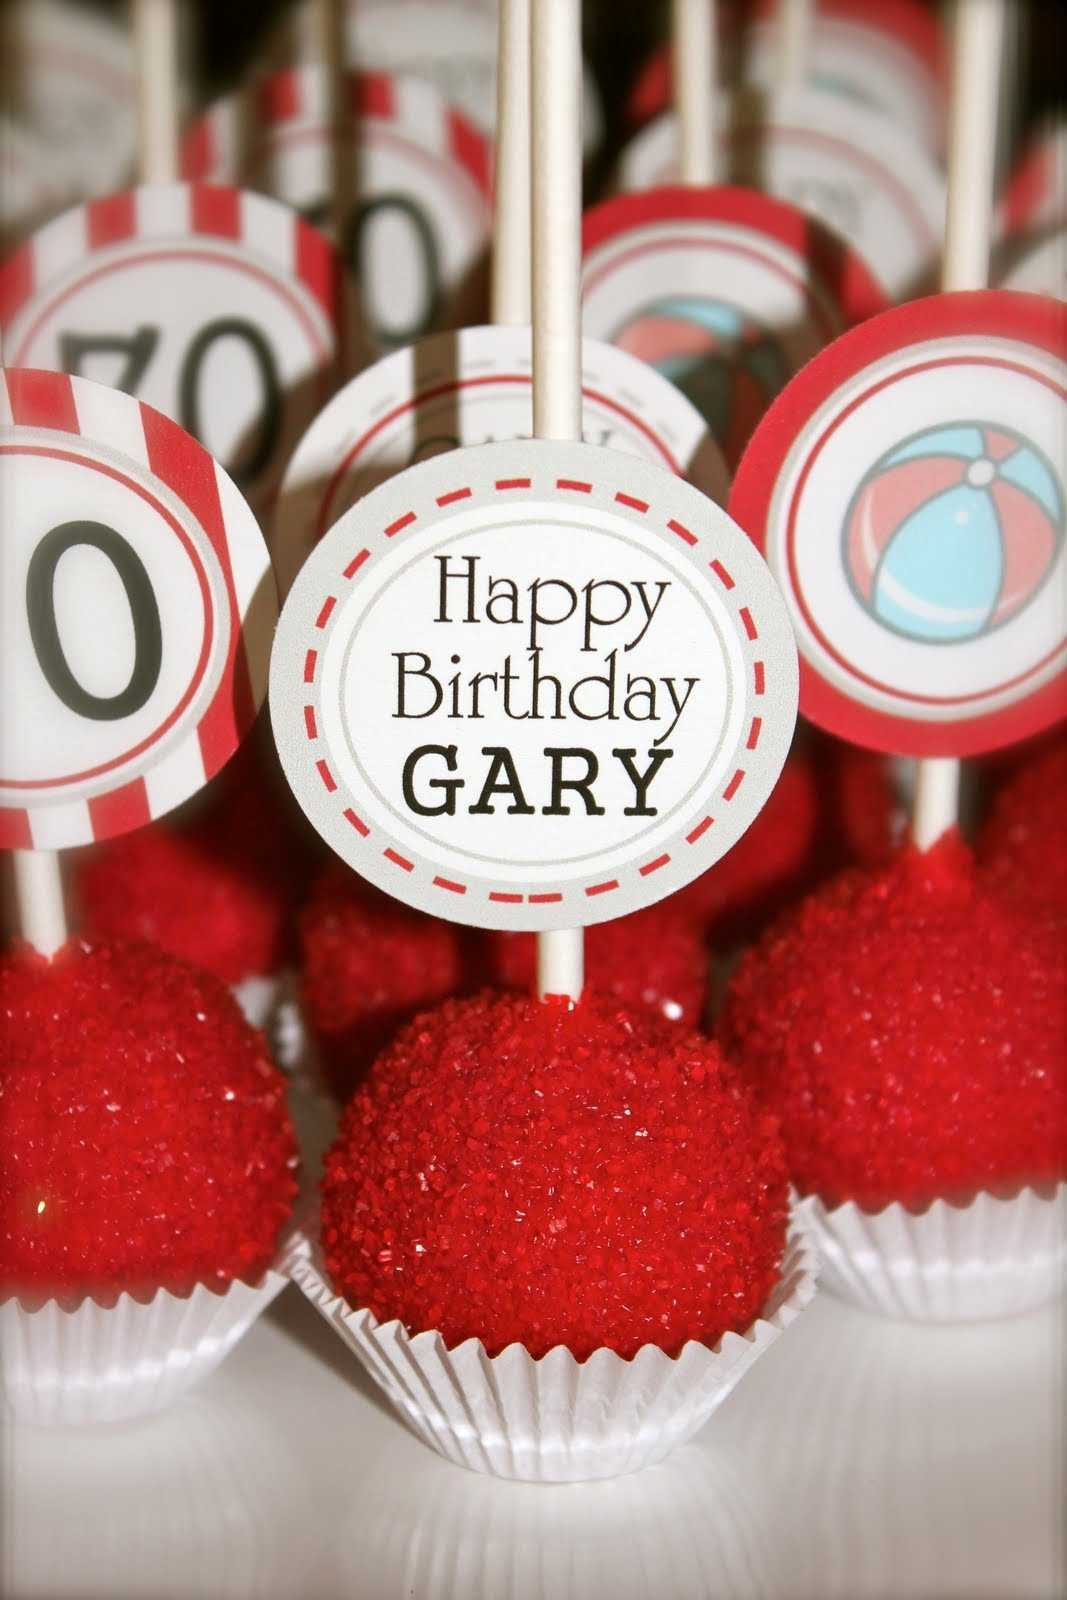 happy birthday gary cake ; happy-birthday-gary-images-awesome-her-bold-events-seventieth-birthday-cake-pop-s-happy-of-happy-birthday-gary-images